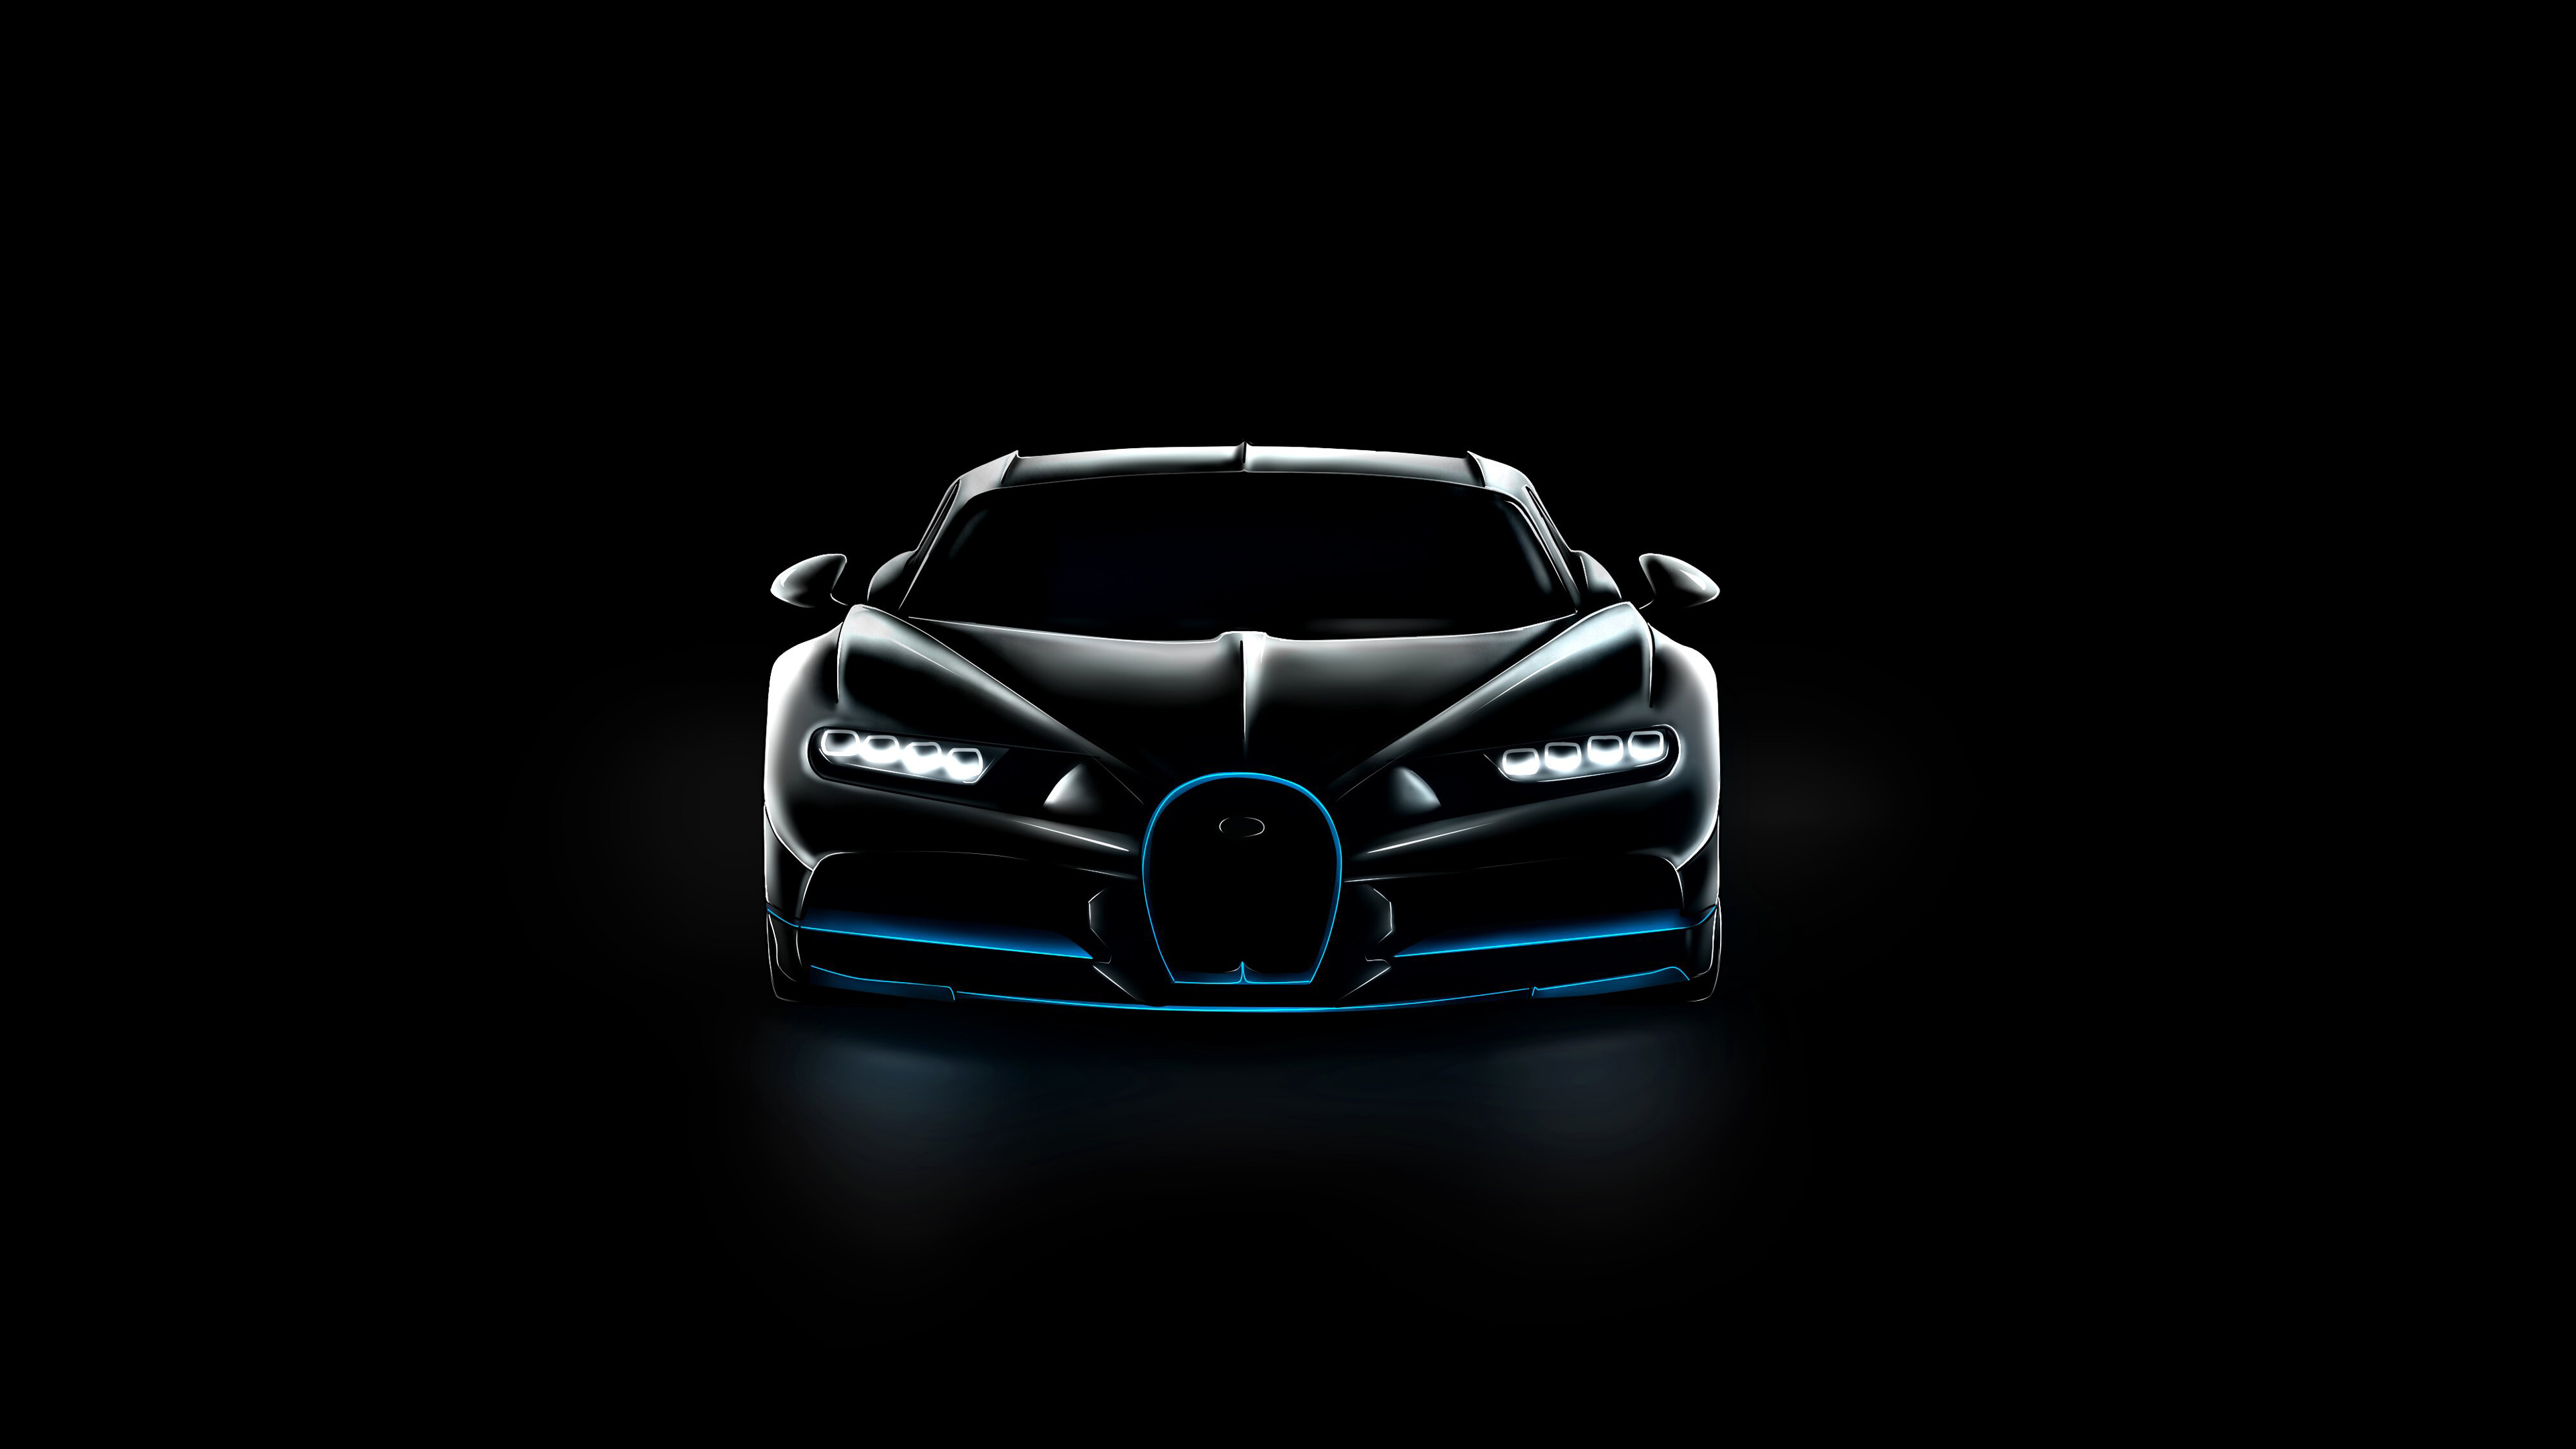 Wallpaper 4k Bugatti Chiron Sport 4k 4k Wallpapers Artwork Wallpapers Bugatti Chiron Wallpapers Bugatti Wallpapers Cars Wallpapers Hd Wallpapers